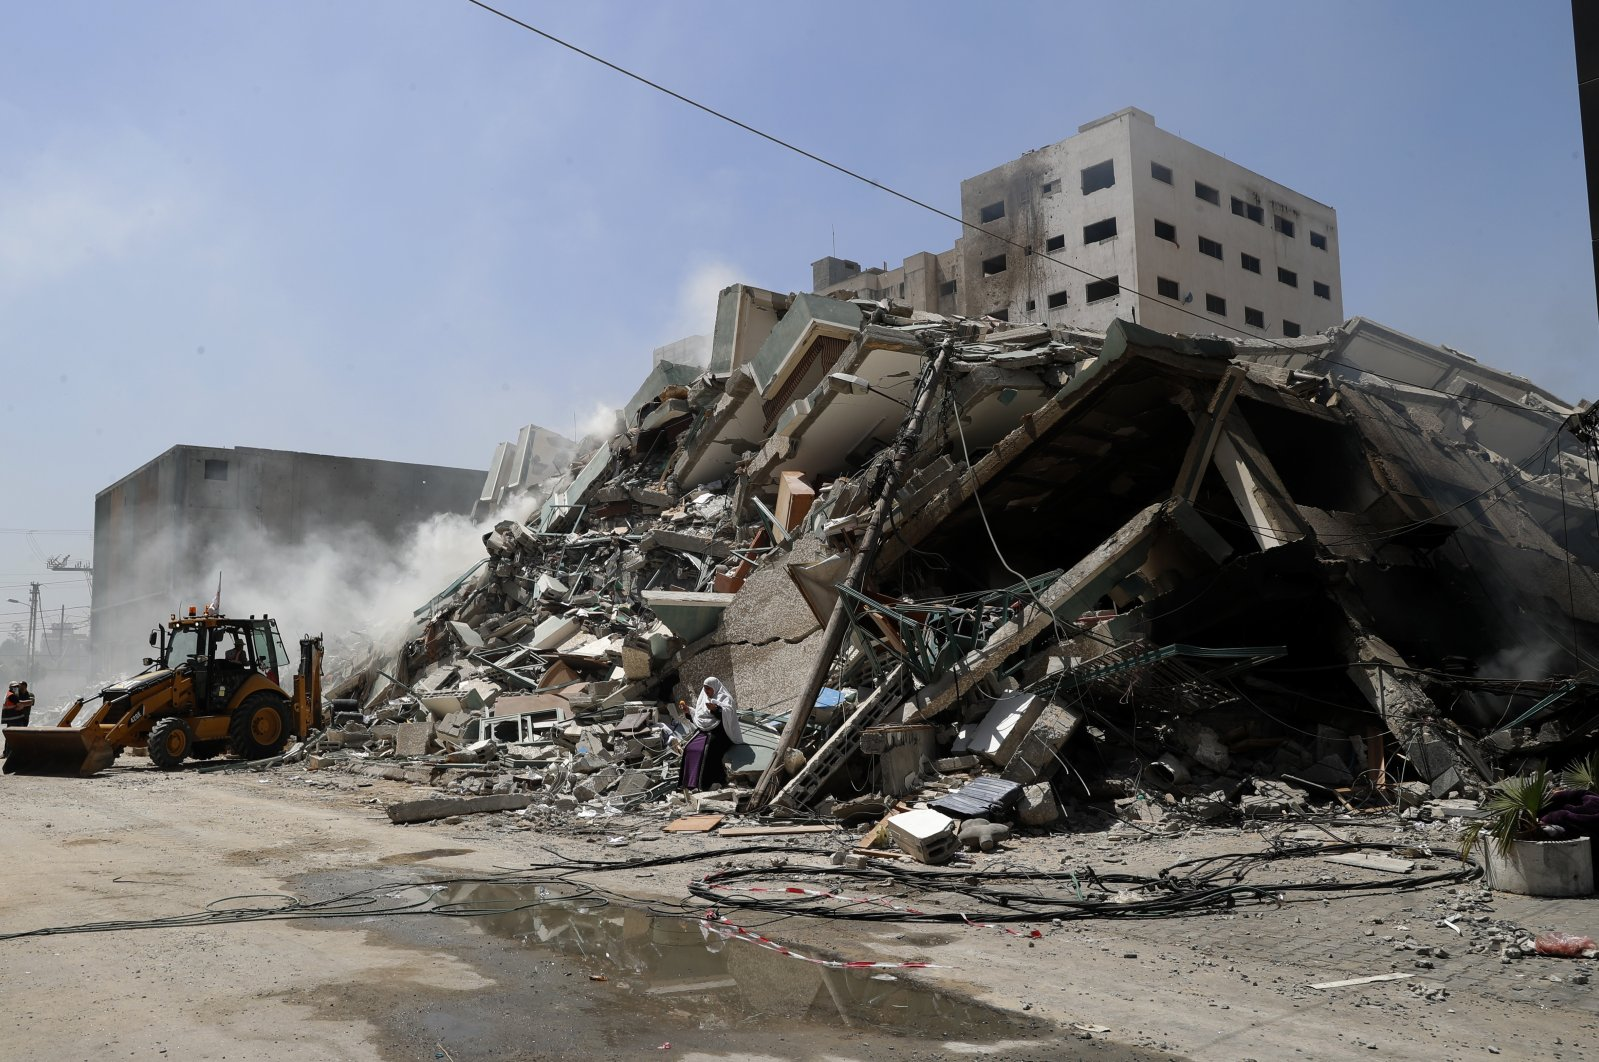 Workers clear the rubble of a building that was destroyed by an Israeli airstrike on Saturday, that housed The Associated Press, broadcaster Al-Jazeera and other media outlets, in Gaza City, Palestine, May 16, 2021. (AP Photo)